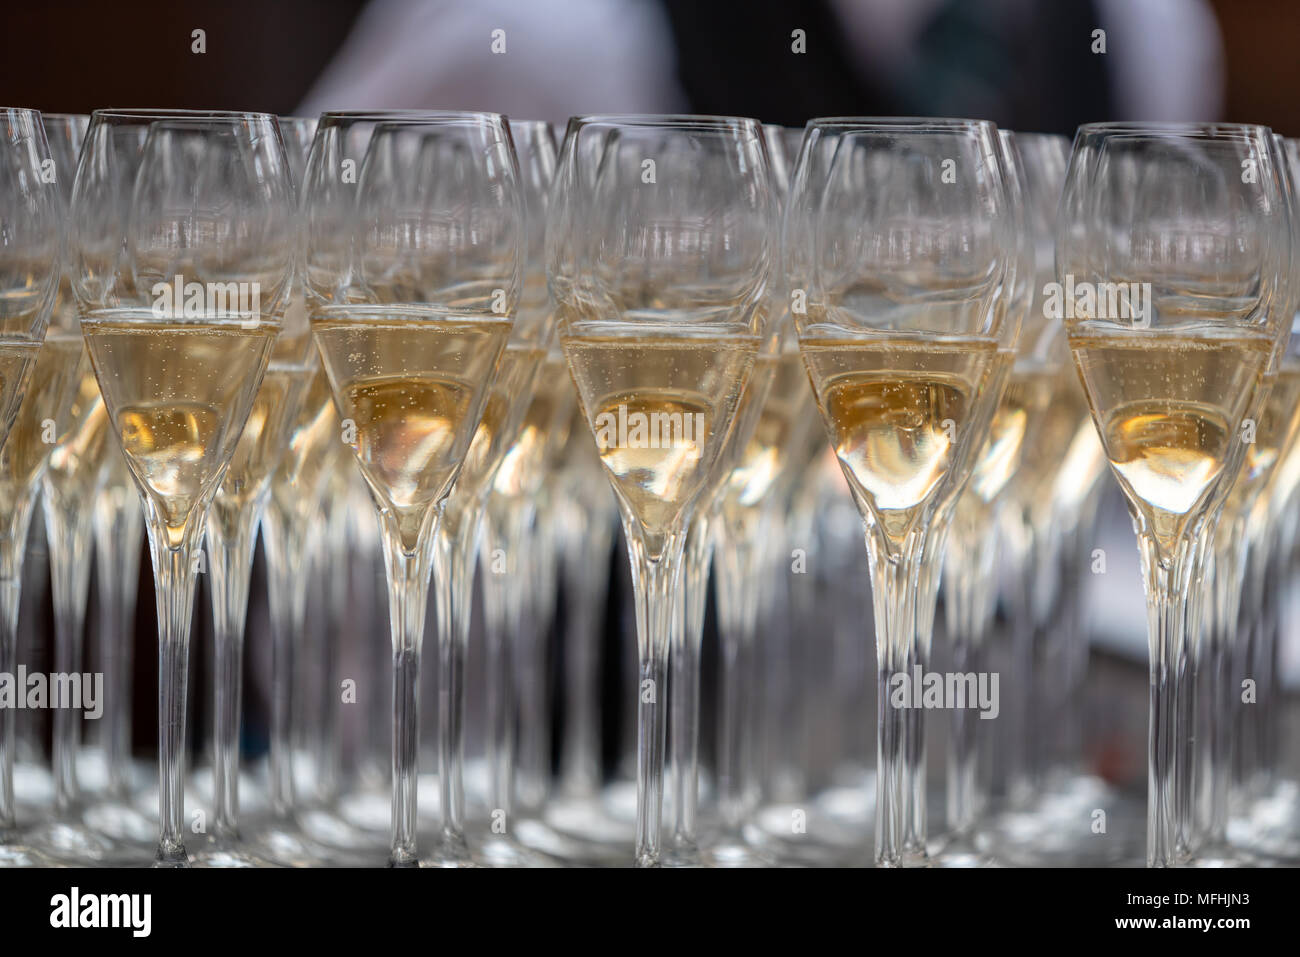 Rows of Champagne glasses - Stock Image